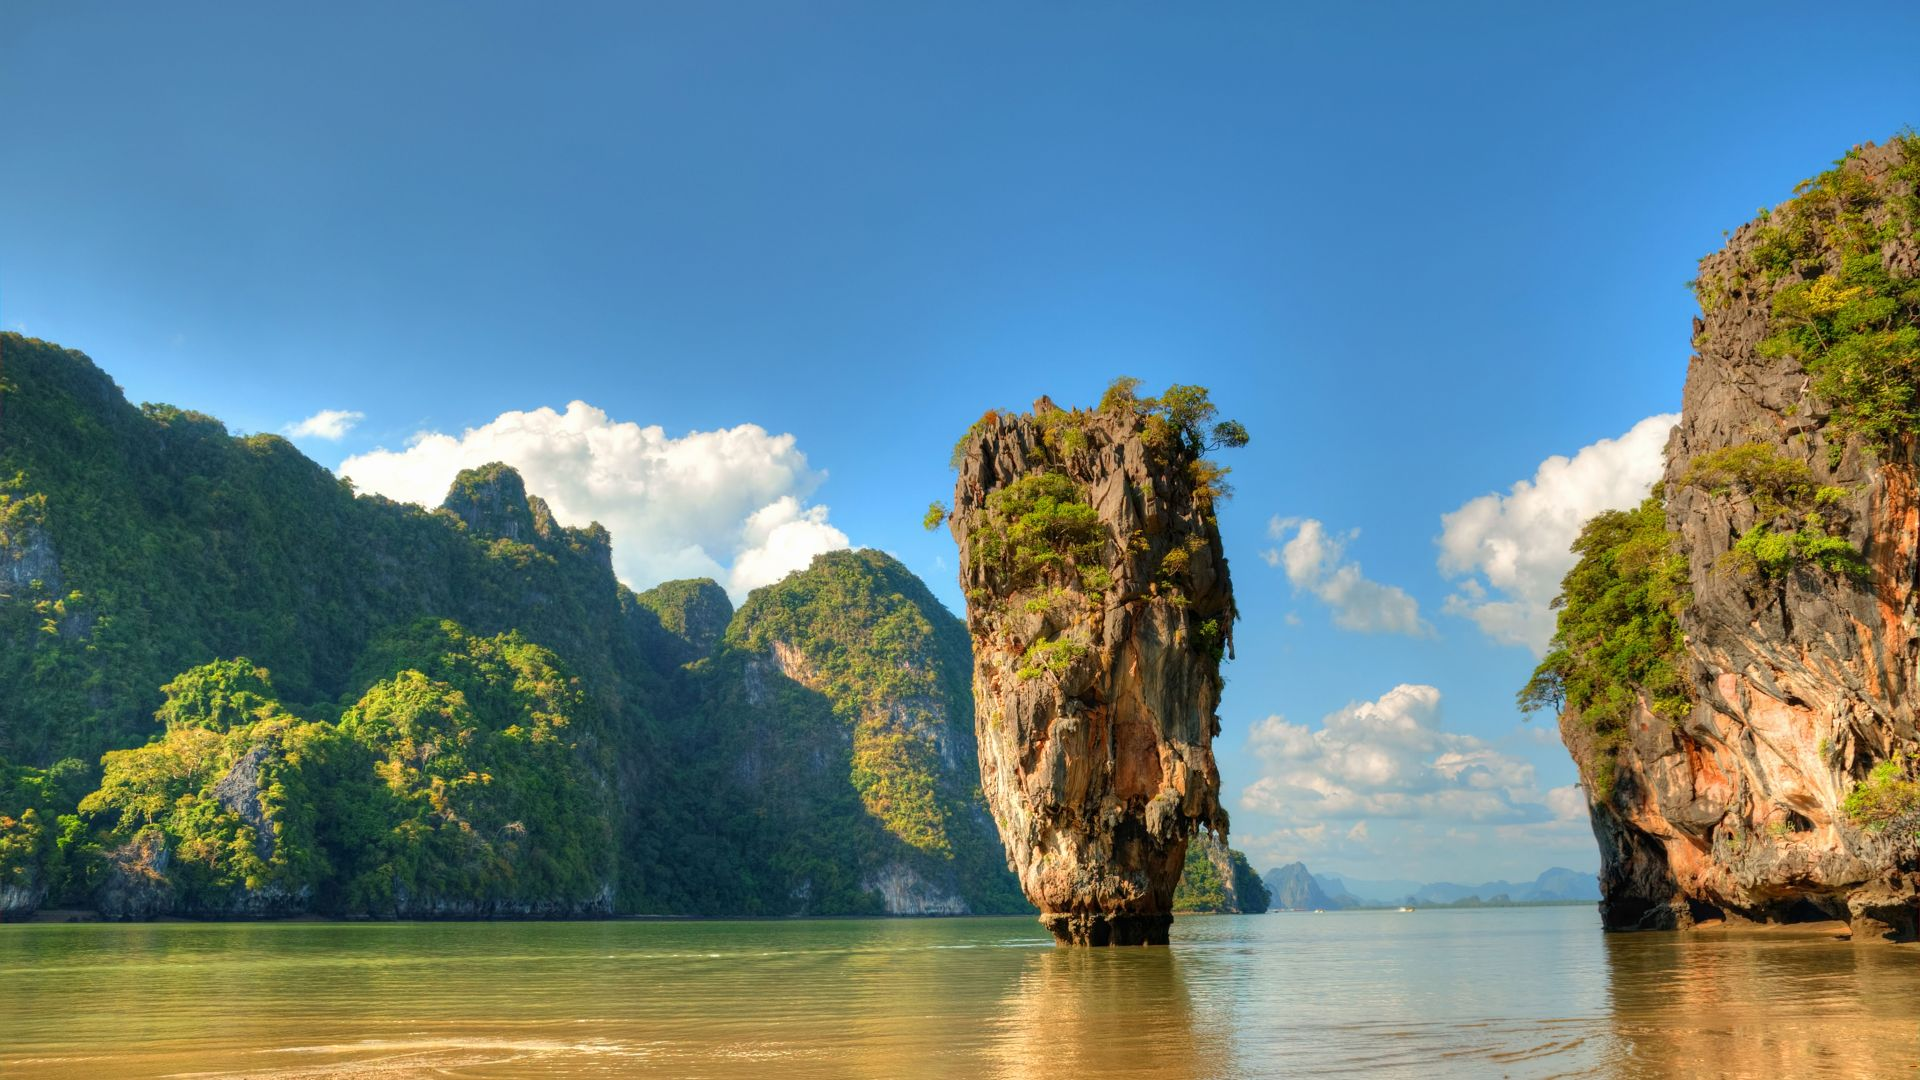 Ko Tapu, Thailand, islands, mountains, rocks, ocean, 5k (horizontal)